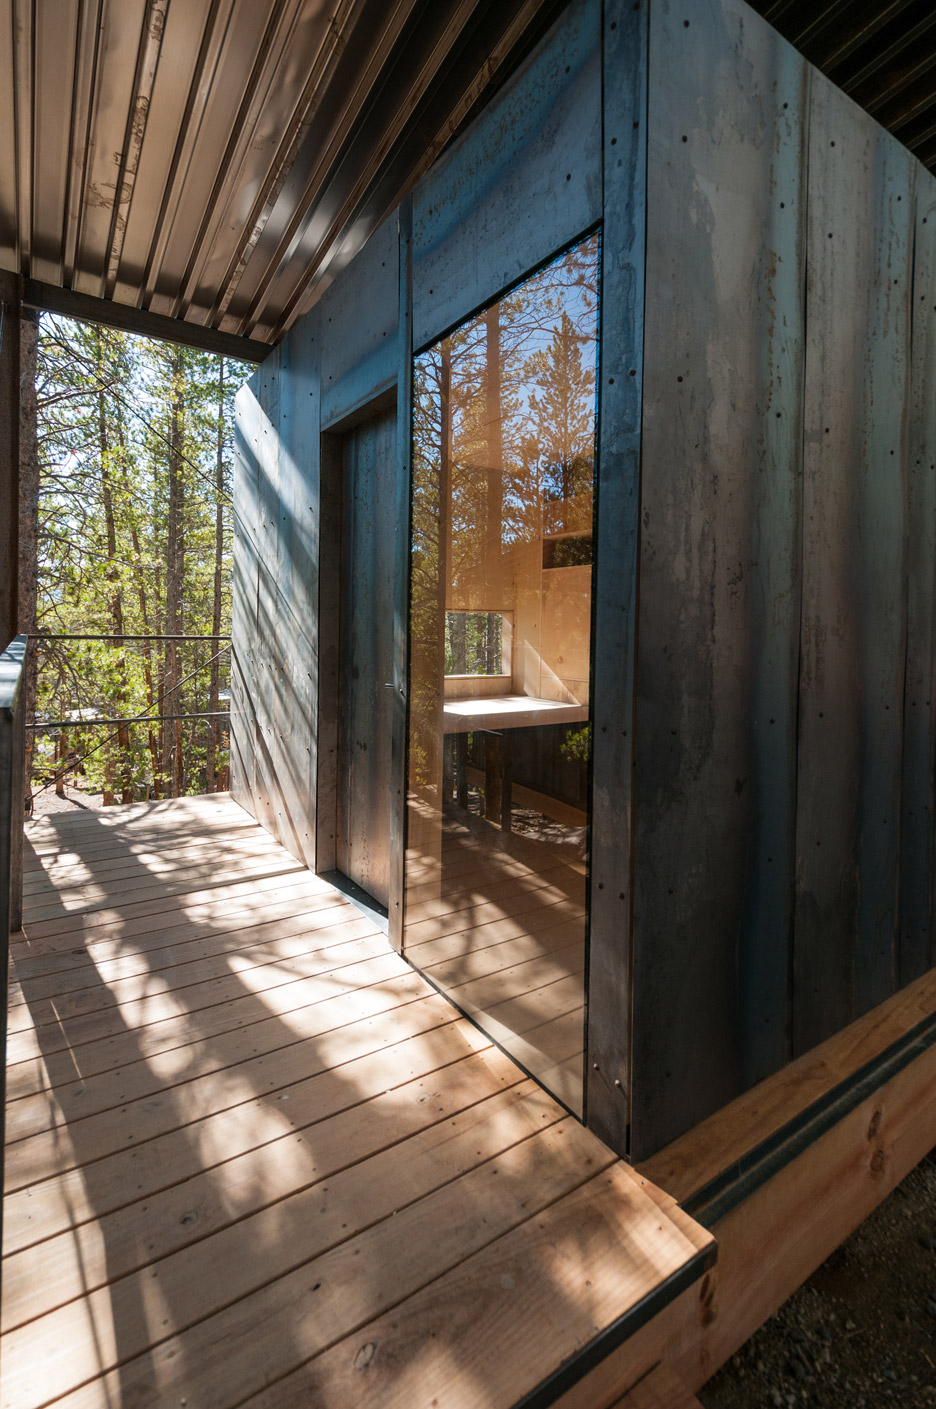 Outward Bound Cabins by Colorado students